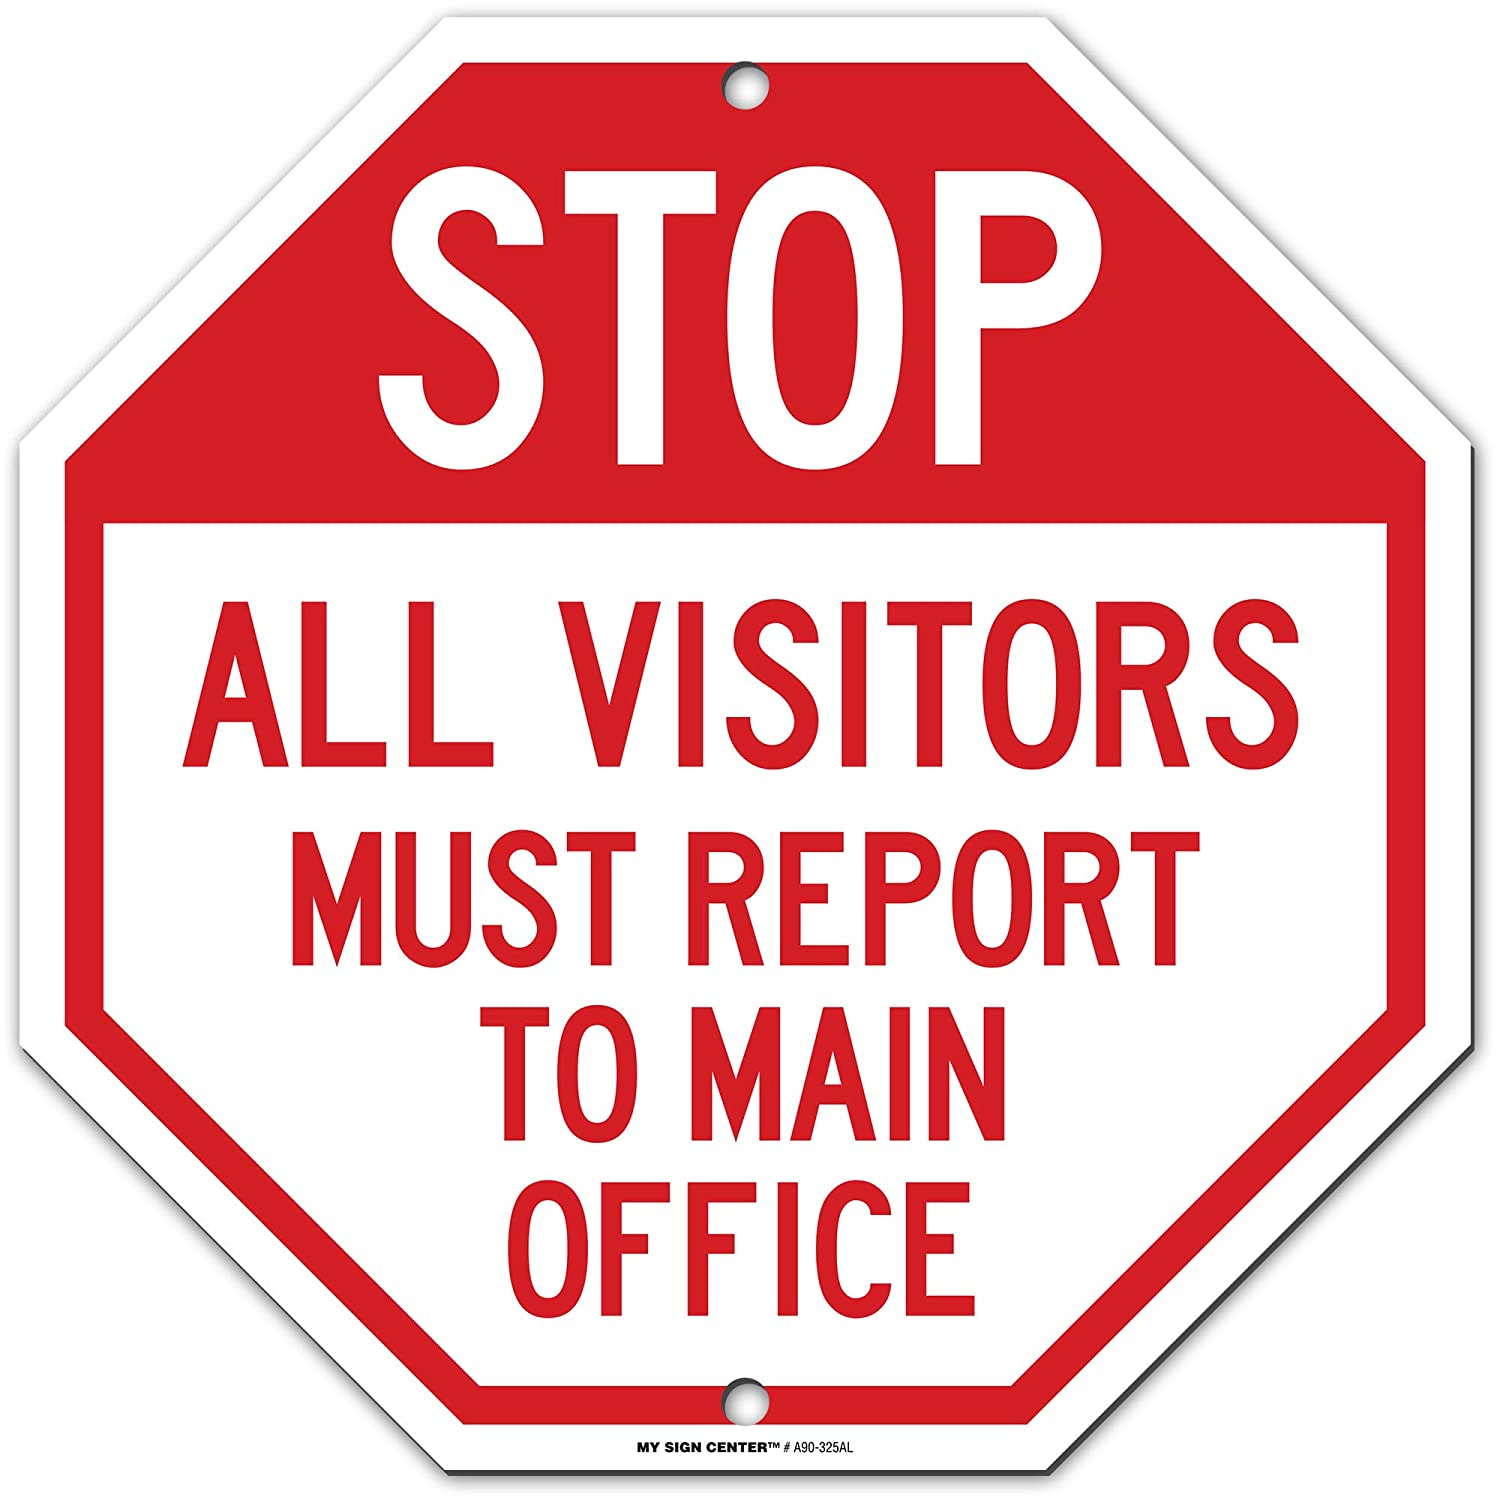 "Stop All Visitors Must Report to Office Check in Sign, Octagon Shaped, Made Out of .040 Rust-Free Aluminum, Indoor/Outdoor Use, UV Protected and Fade-Resistant, 11"" x 11"", by My Sign Center"